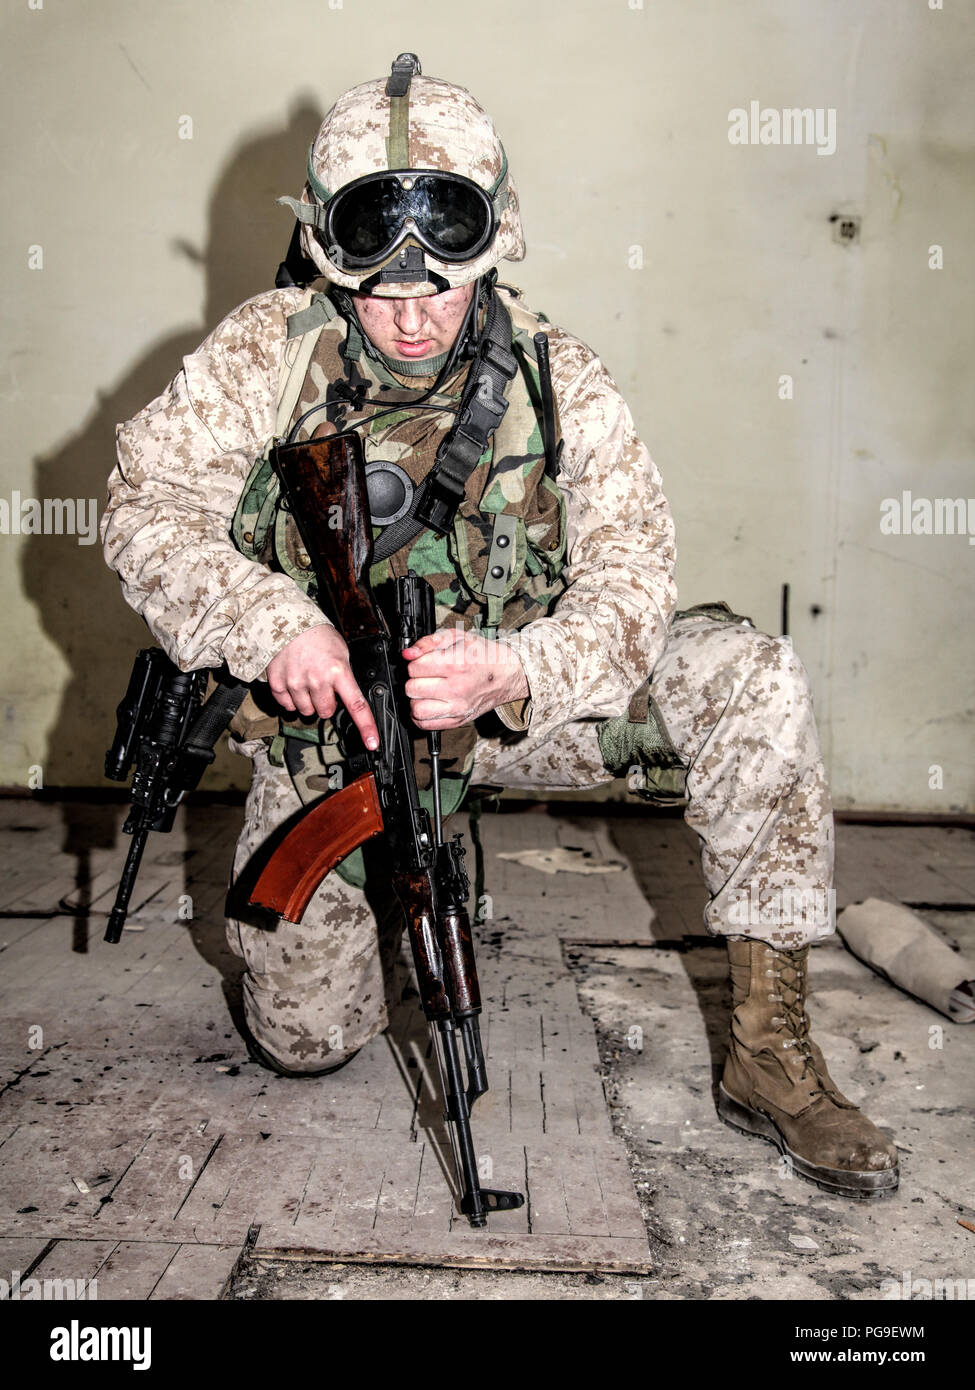 Commando soldier shooter disassembling enemies rifle weapon - Stock Image